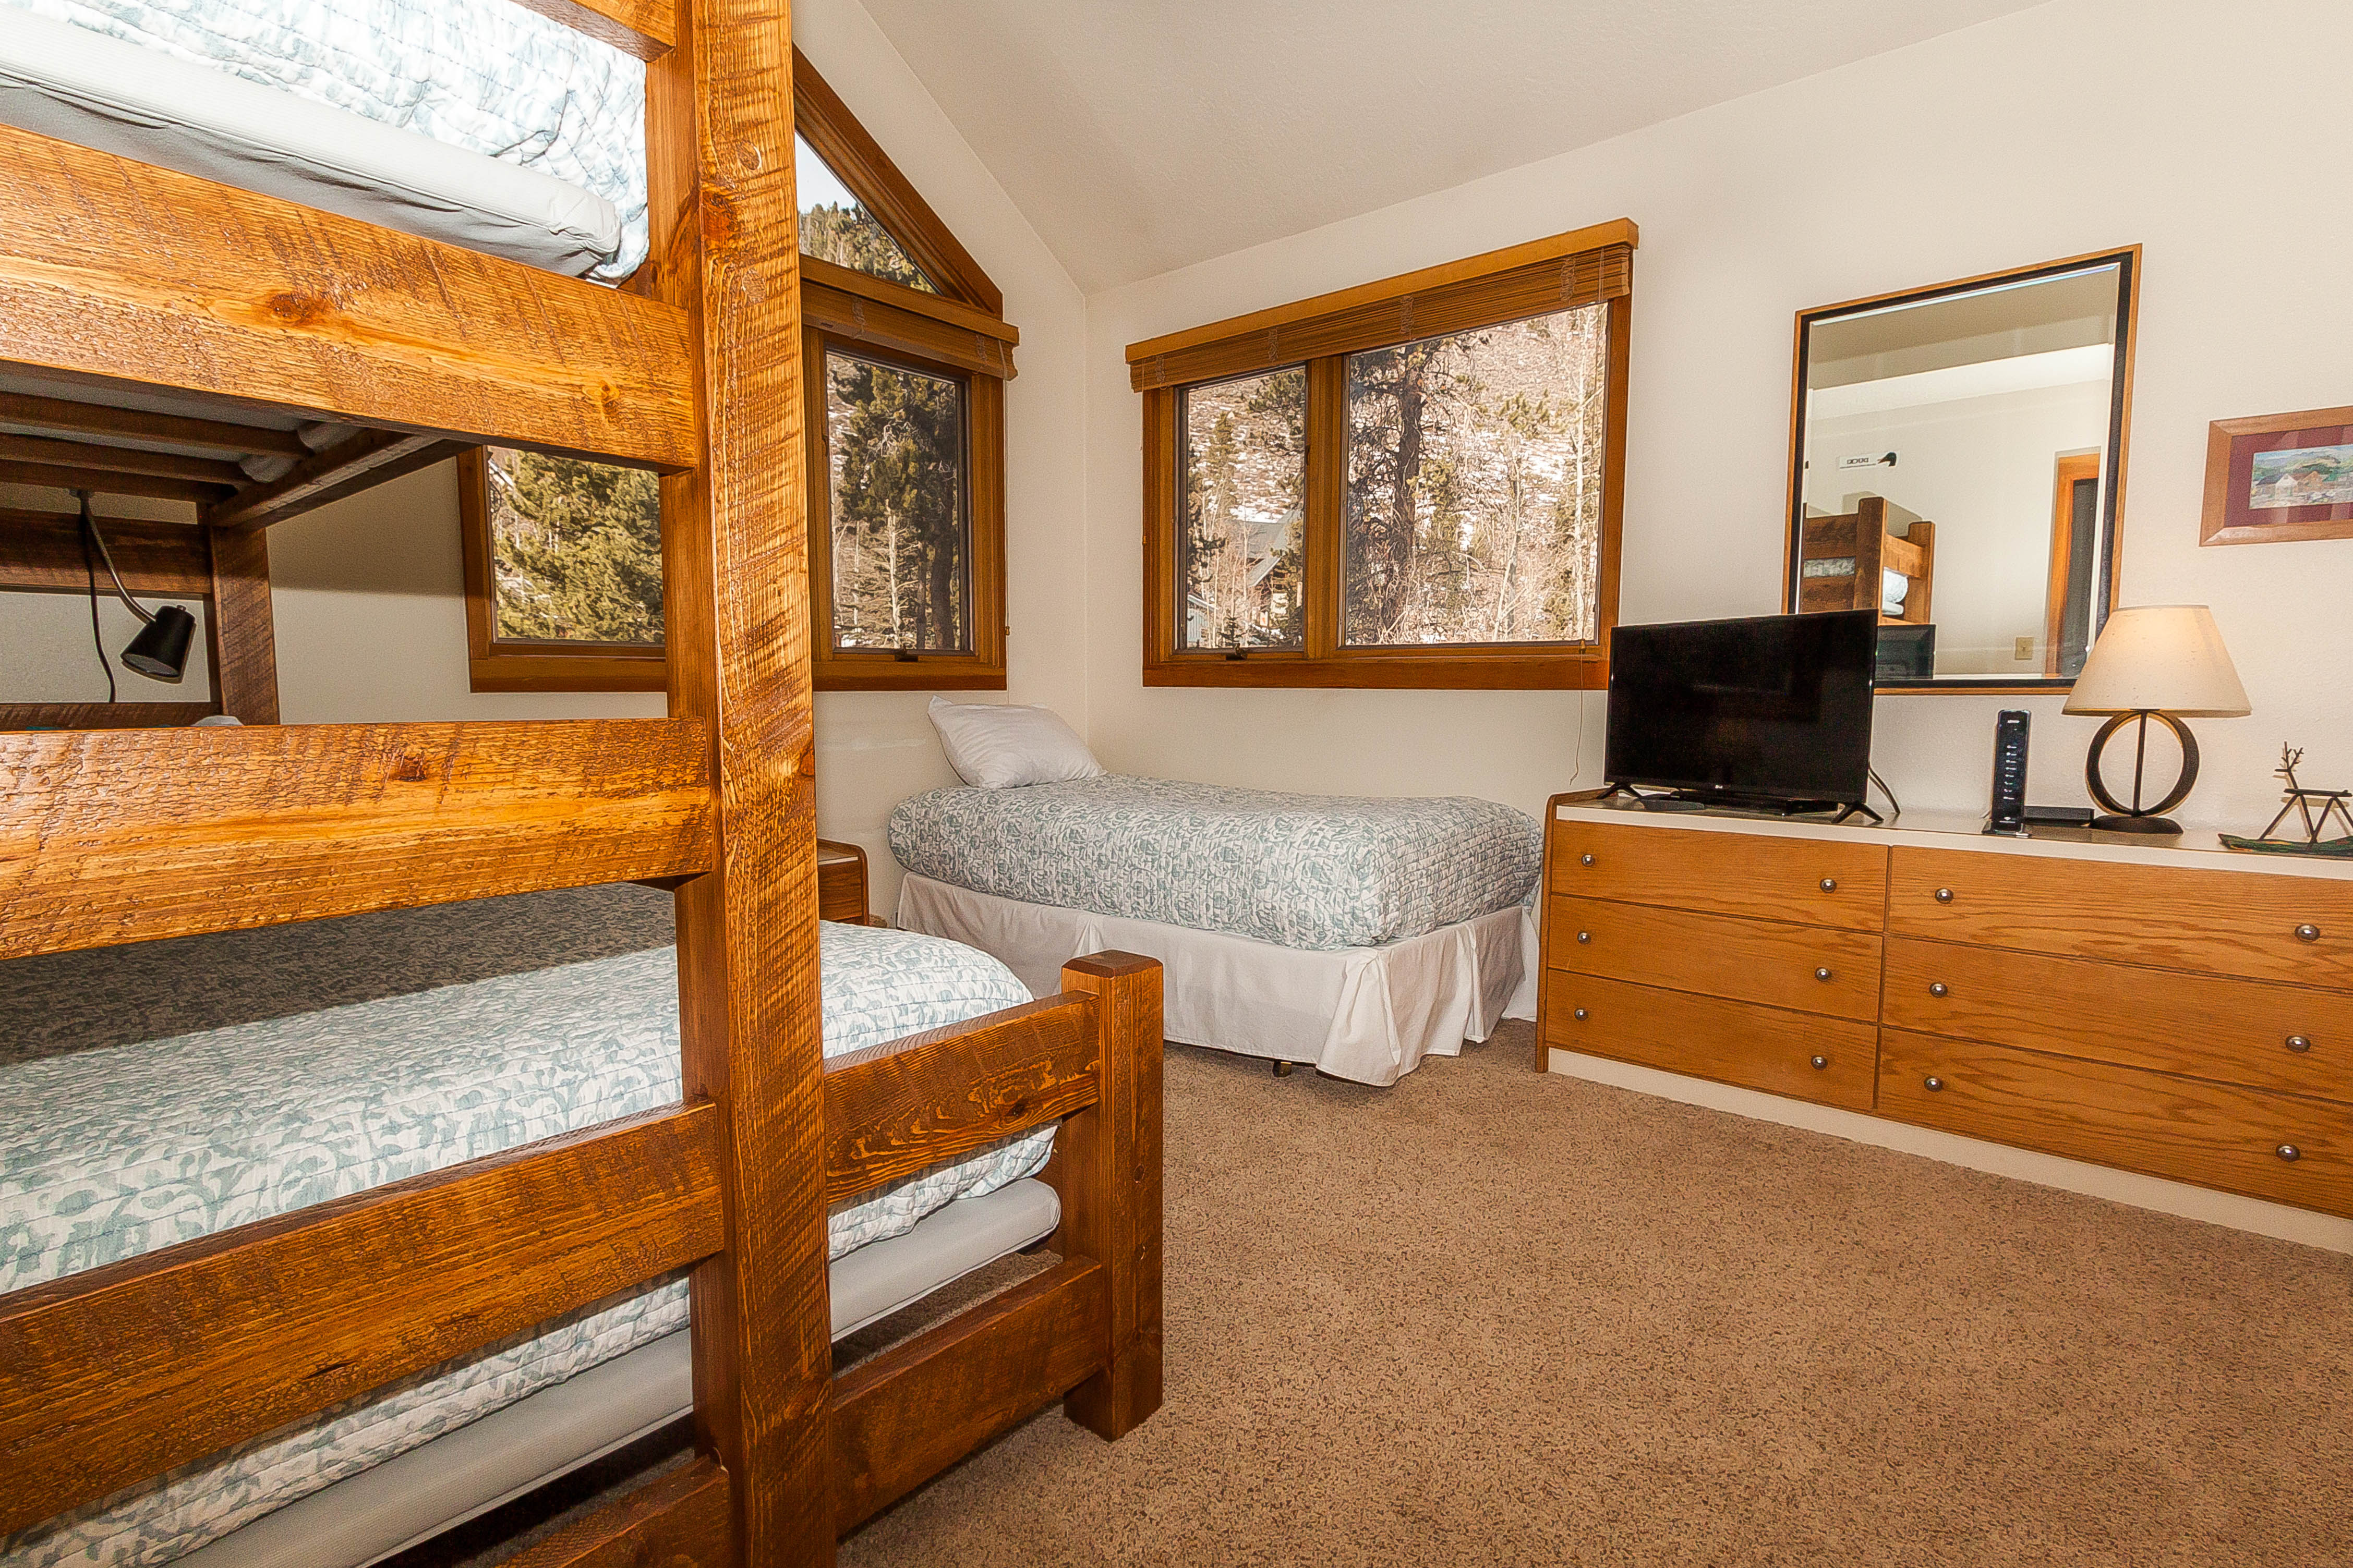 The guest bedroom features a twin-over-queen bunk bed, a twin-sized bed and a flat screen TV.